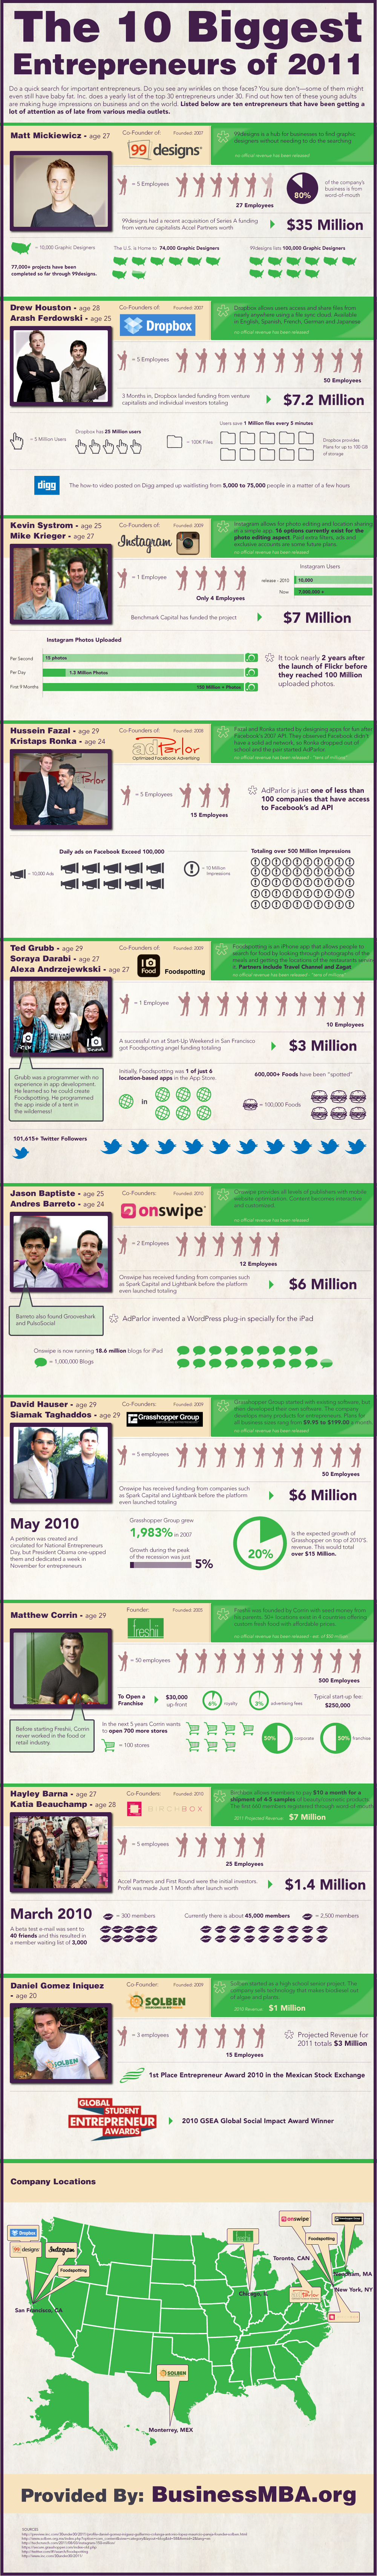 Top Entrepreneurs 2011